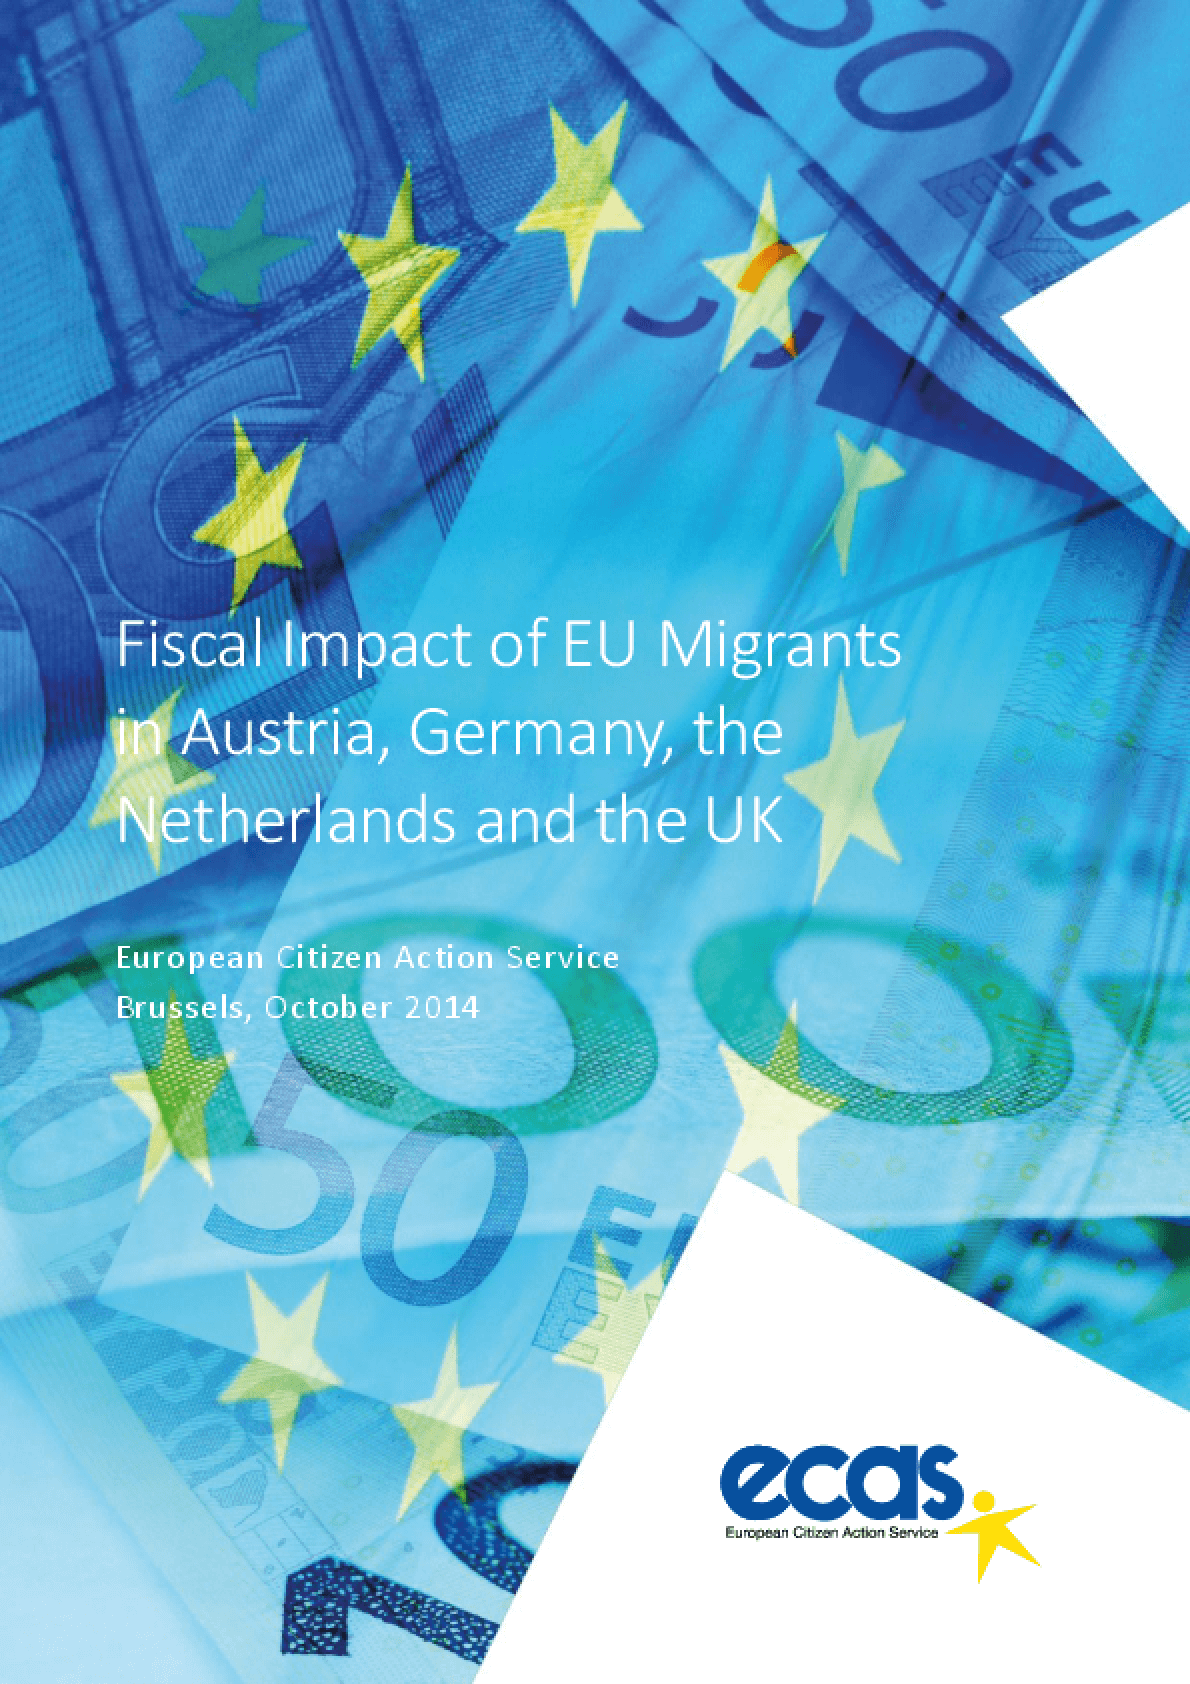 Fiscal Impact of EU Migrants in Austria, Germany, the Netherlands and the UK